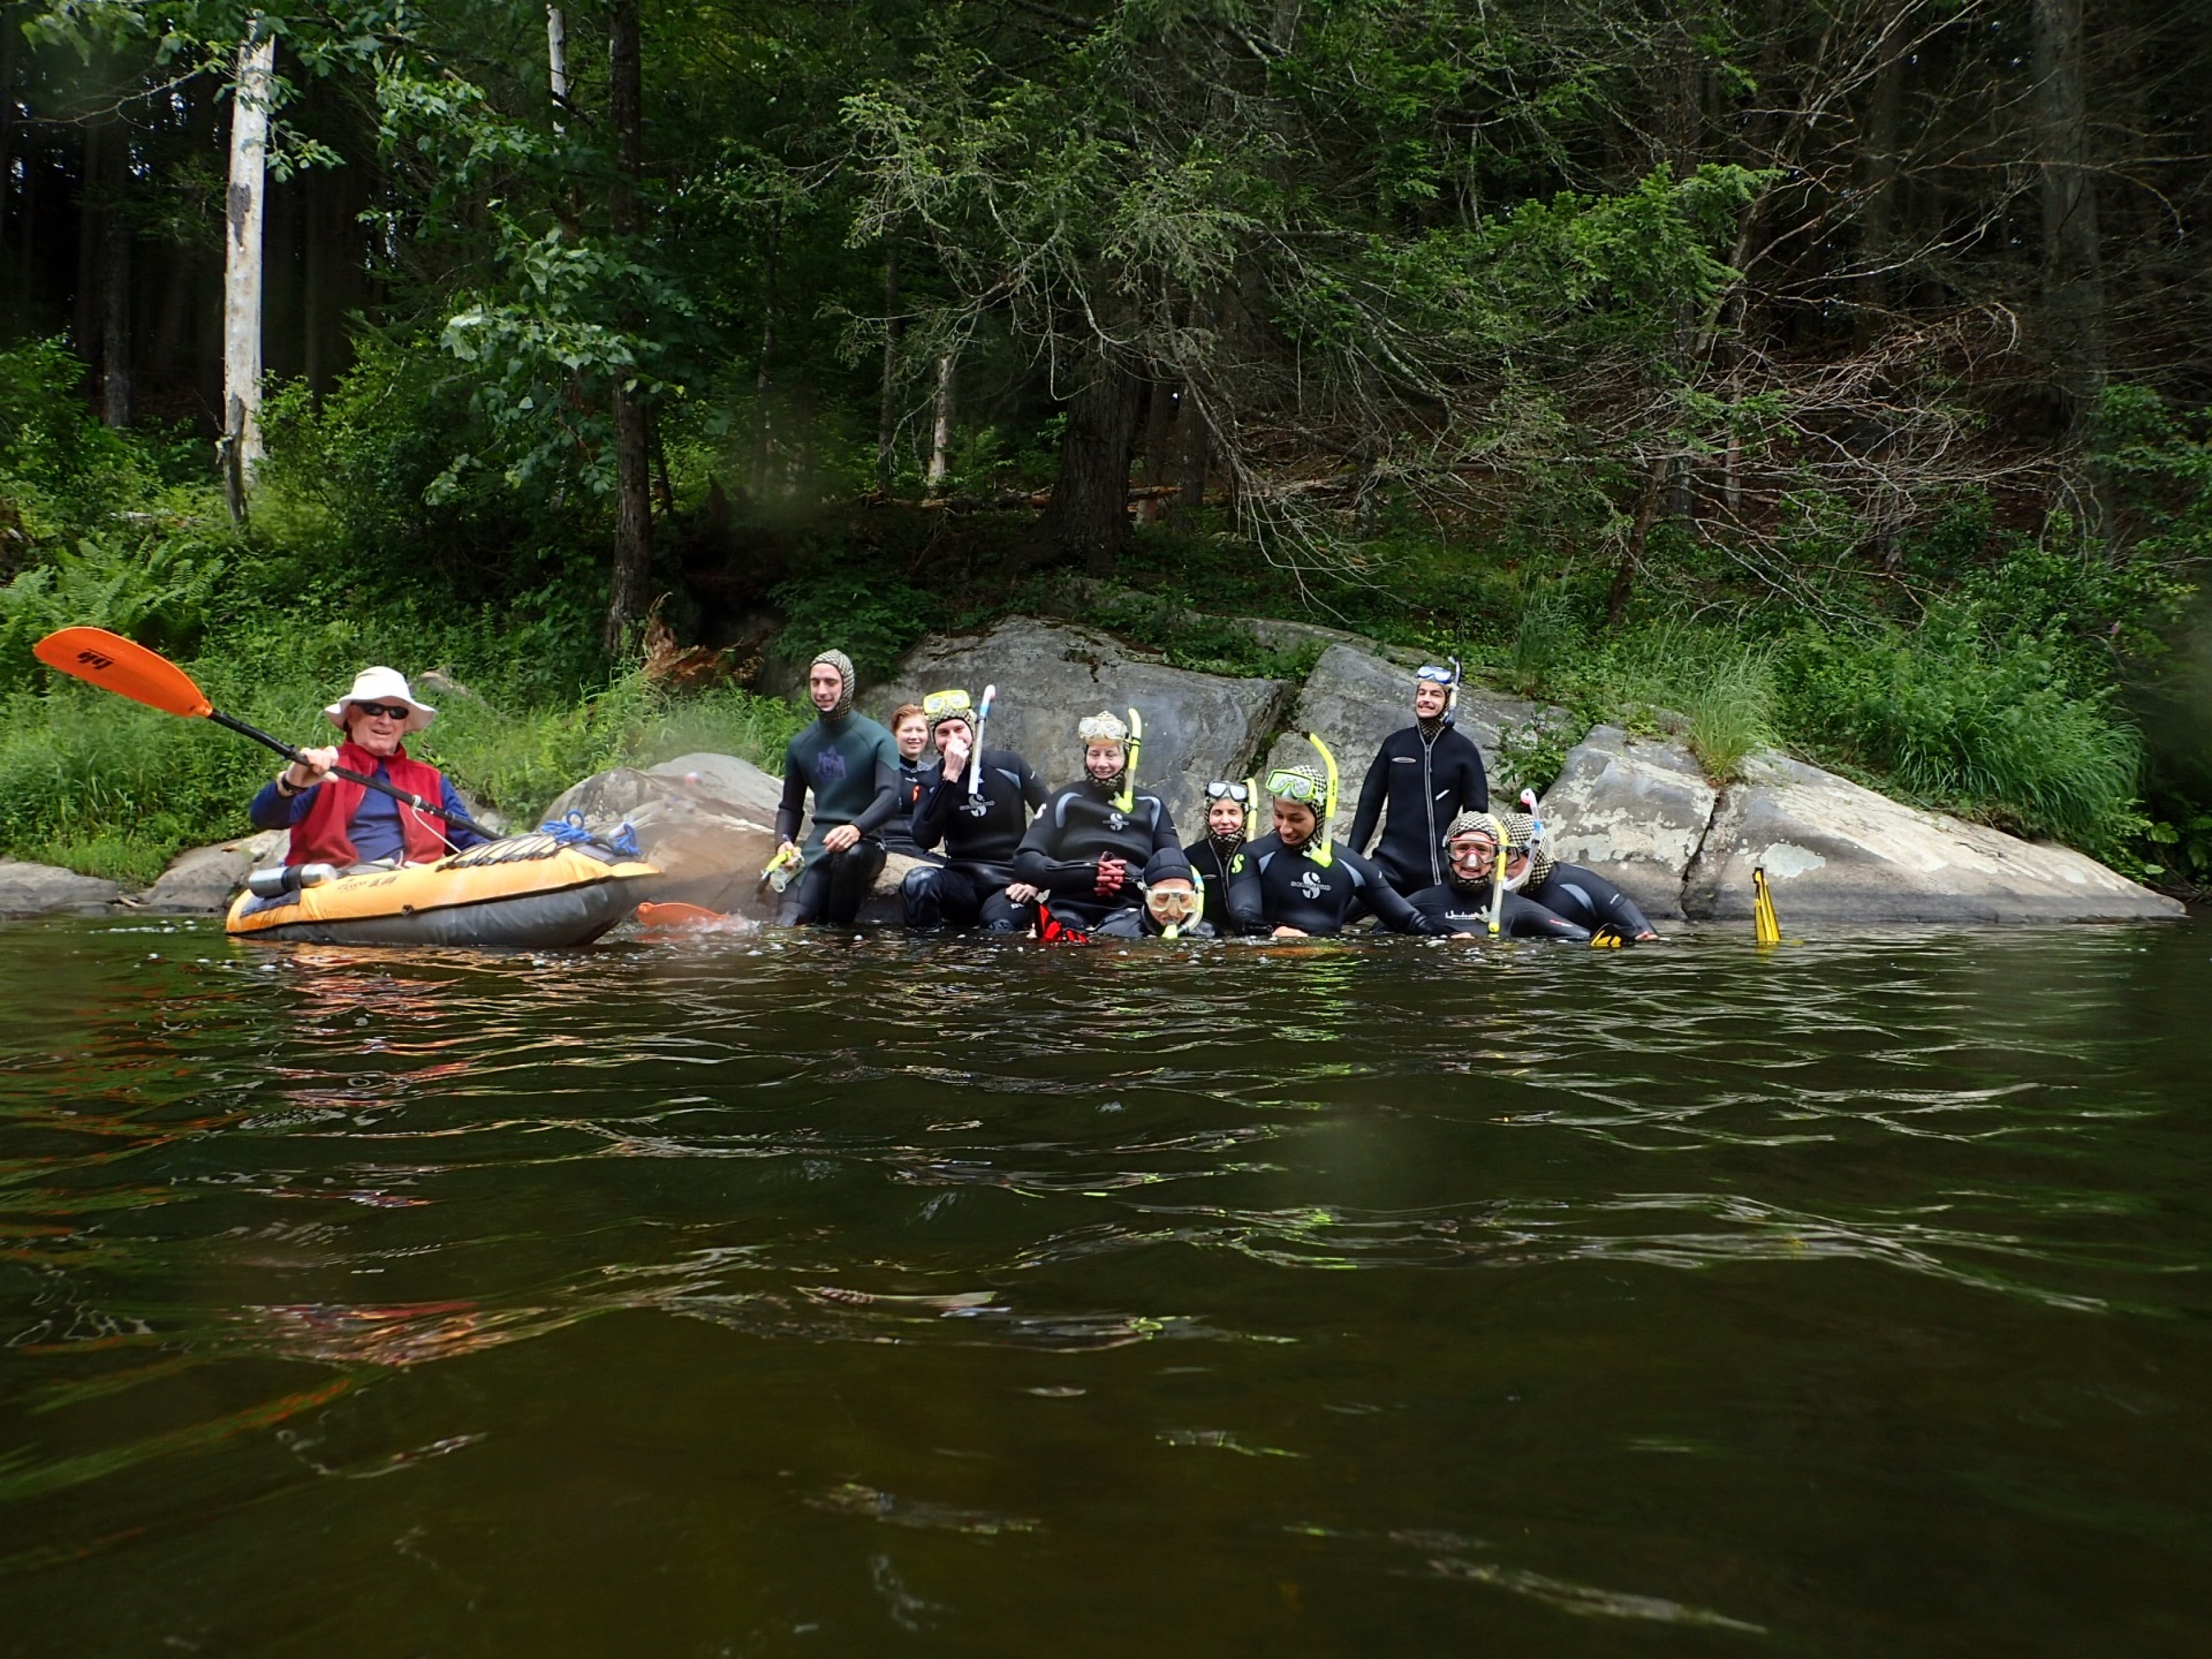 Group of snorkelers and a kayaker in Wild & Scenic Westfield River